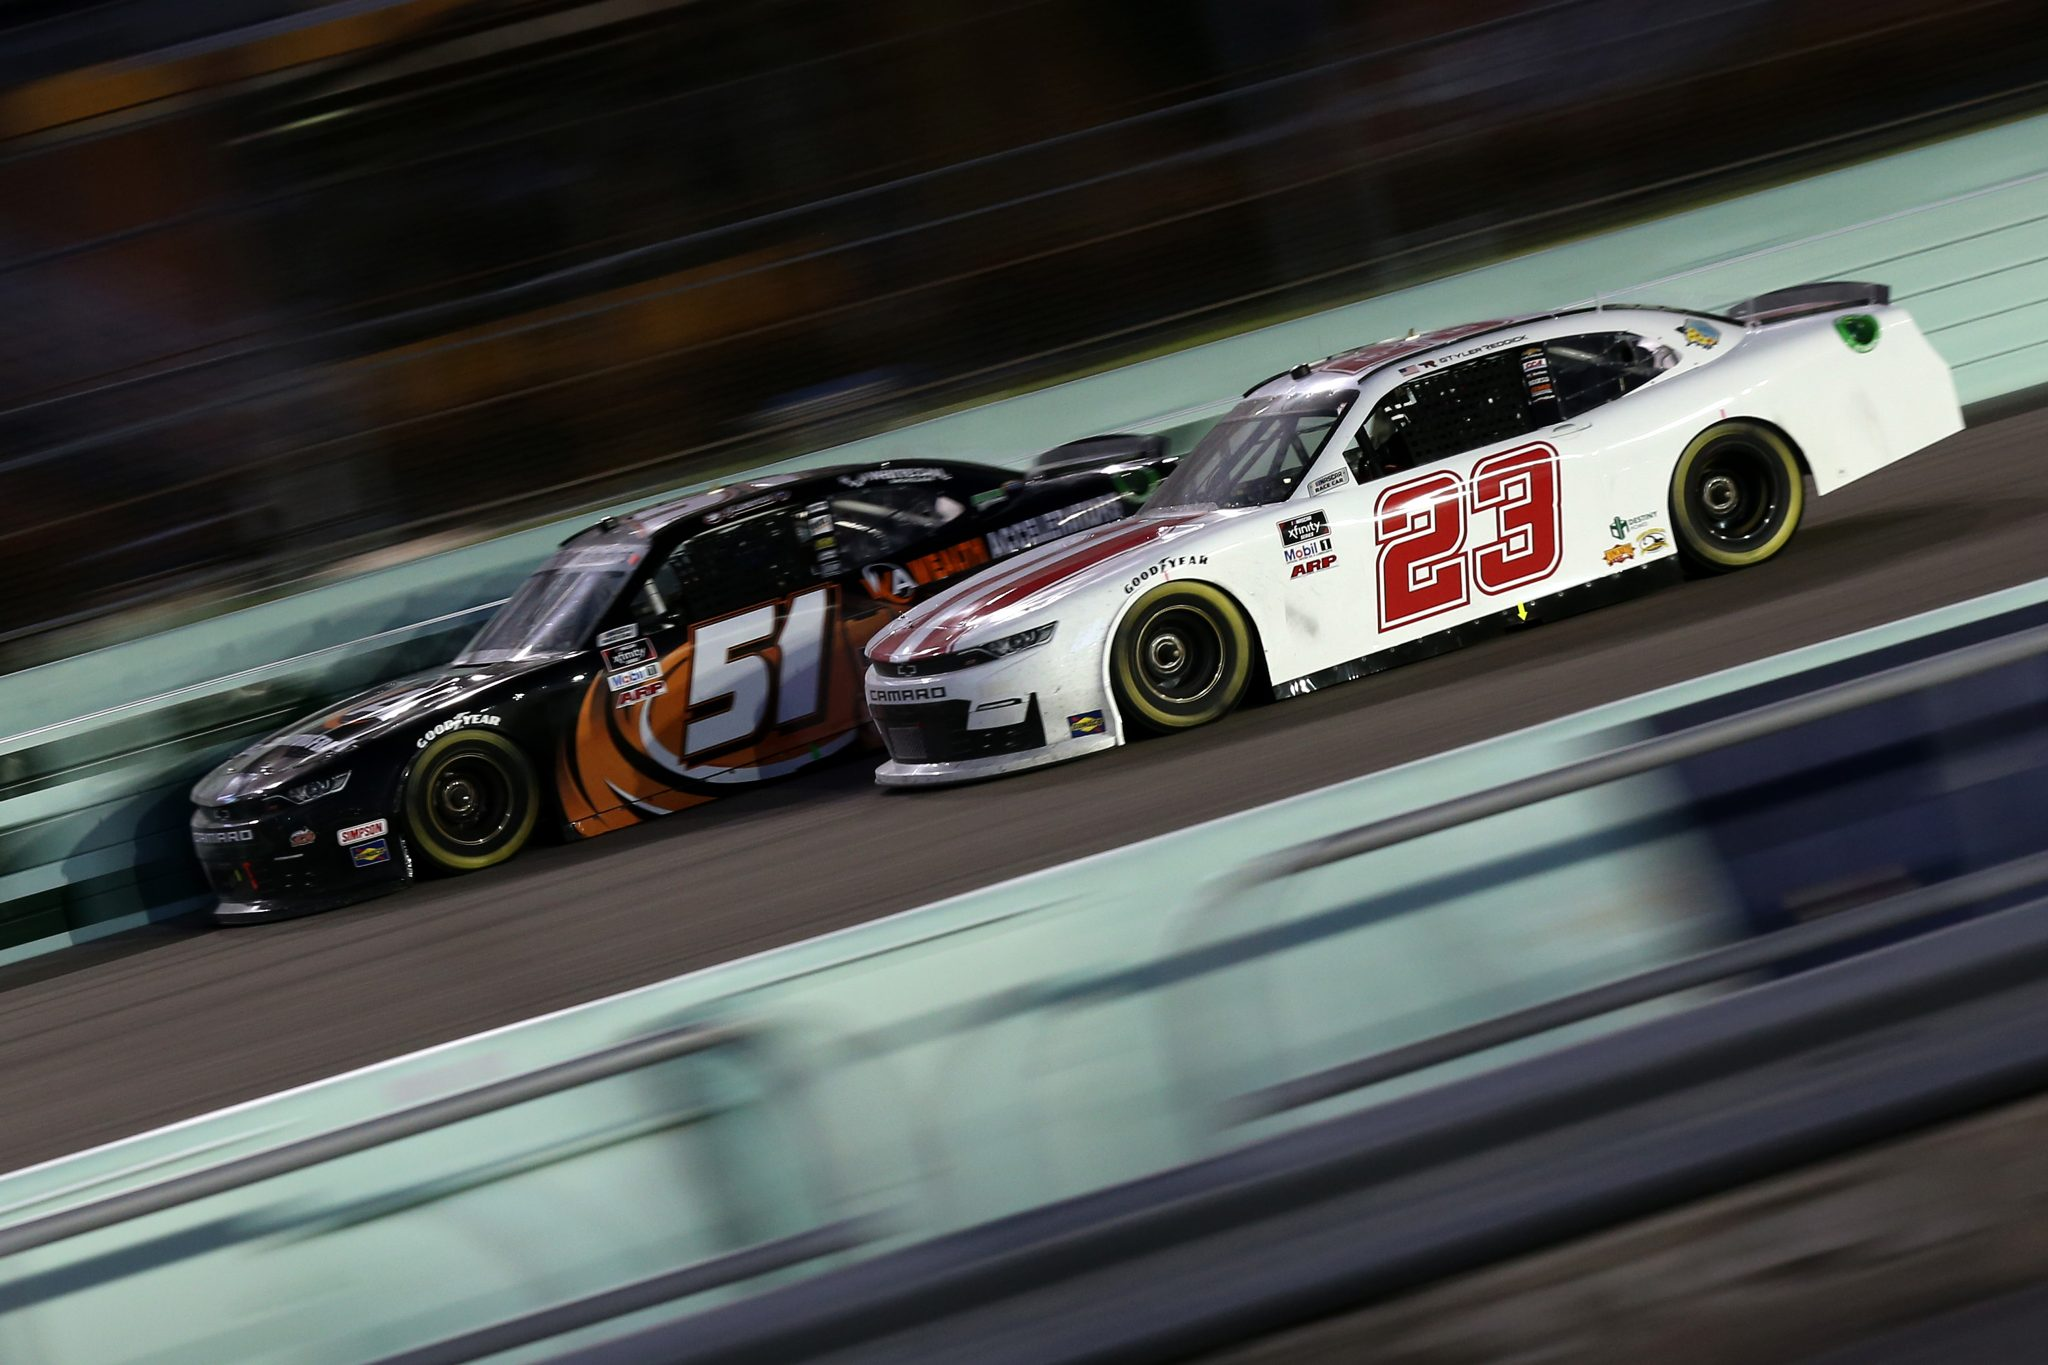 HOMESTEAD, FLORIDA - FEBRUARY 27: Tyler Reddick, driver of the #23 Chevrolet, and Jeremy Clements, driver of the #51 Wealth Accelerators Chevrolet, race during the NASCAR Xfinity Series Contender Boats 250 at Homestead-Miami Speedway on February 27, 2021 in Homestead, Florida. (Photo by Sean Gardner/Getty Images) | Getty Images